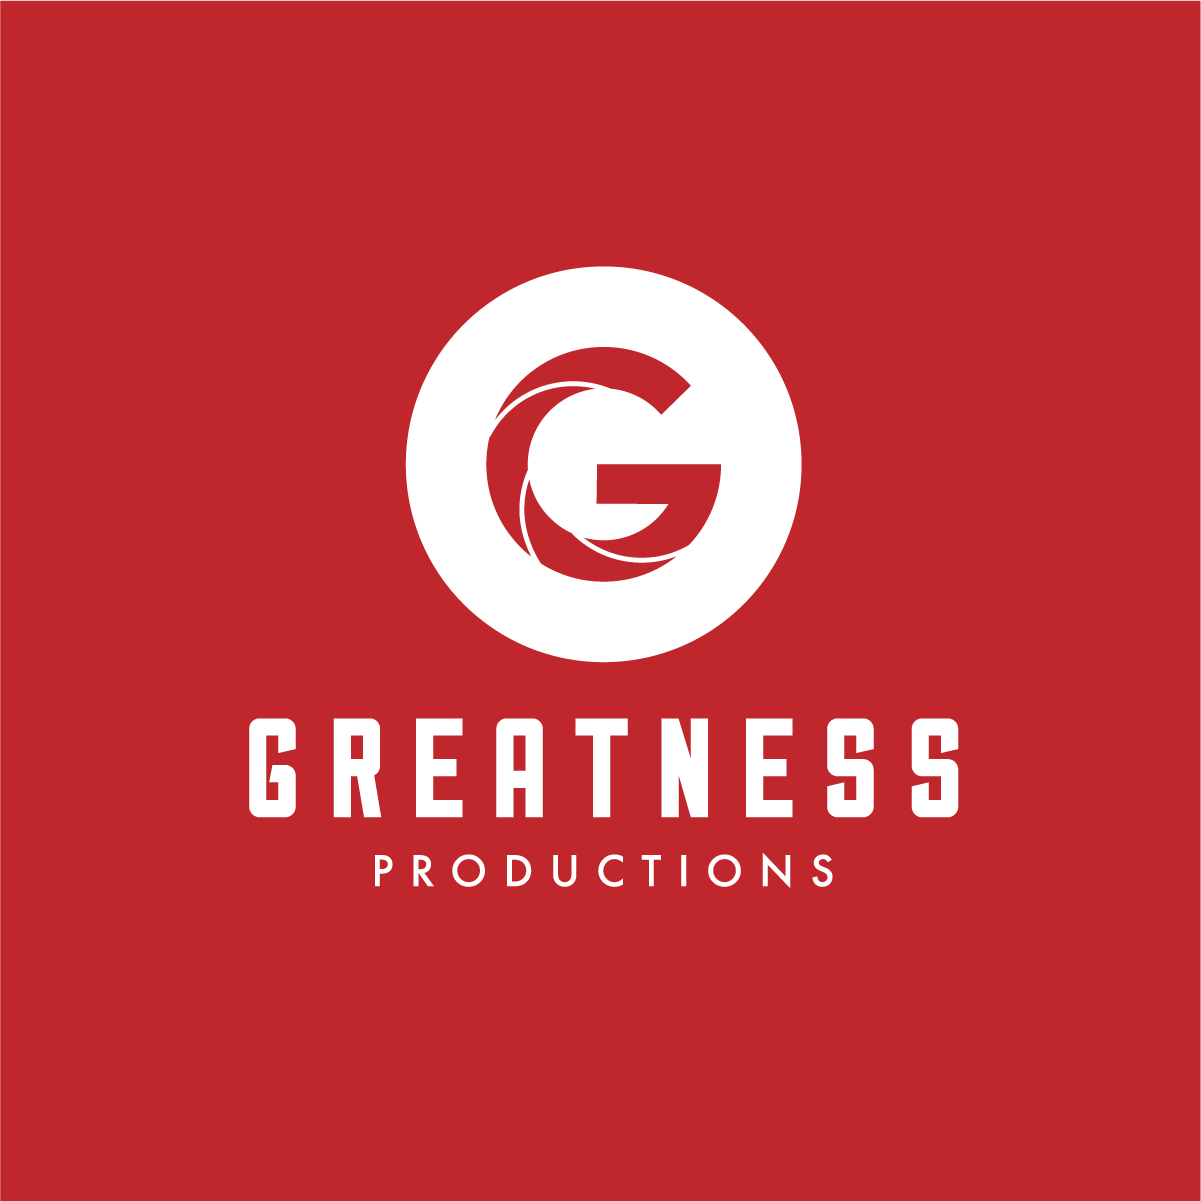 Greatness-02.png